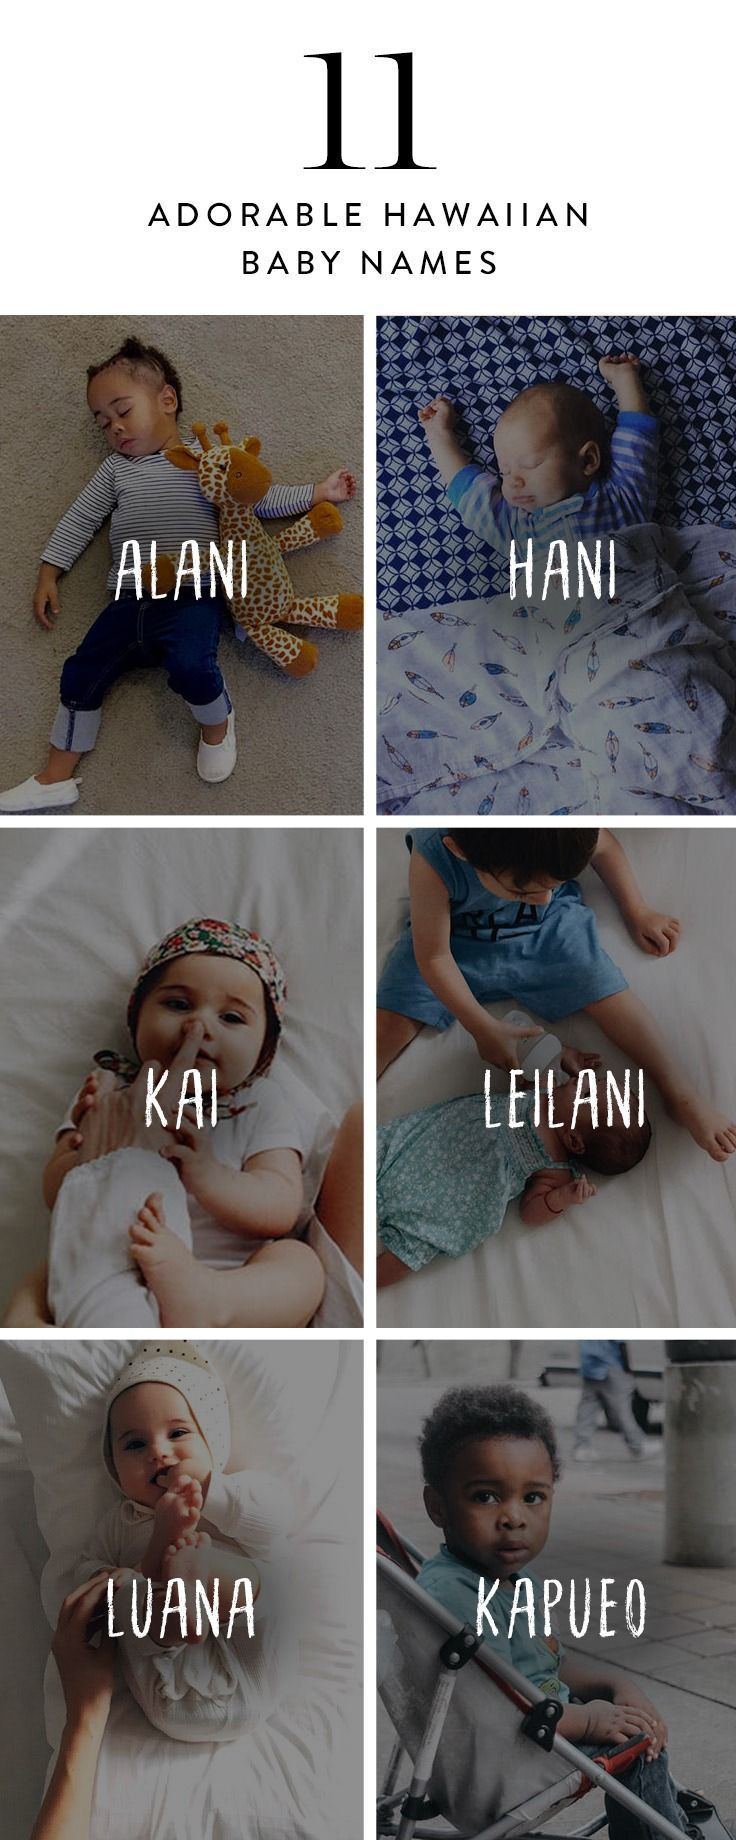 Find a Name for your Baby! #babynames